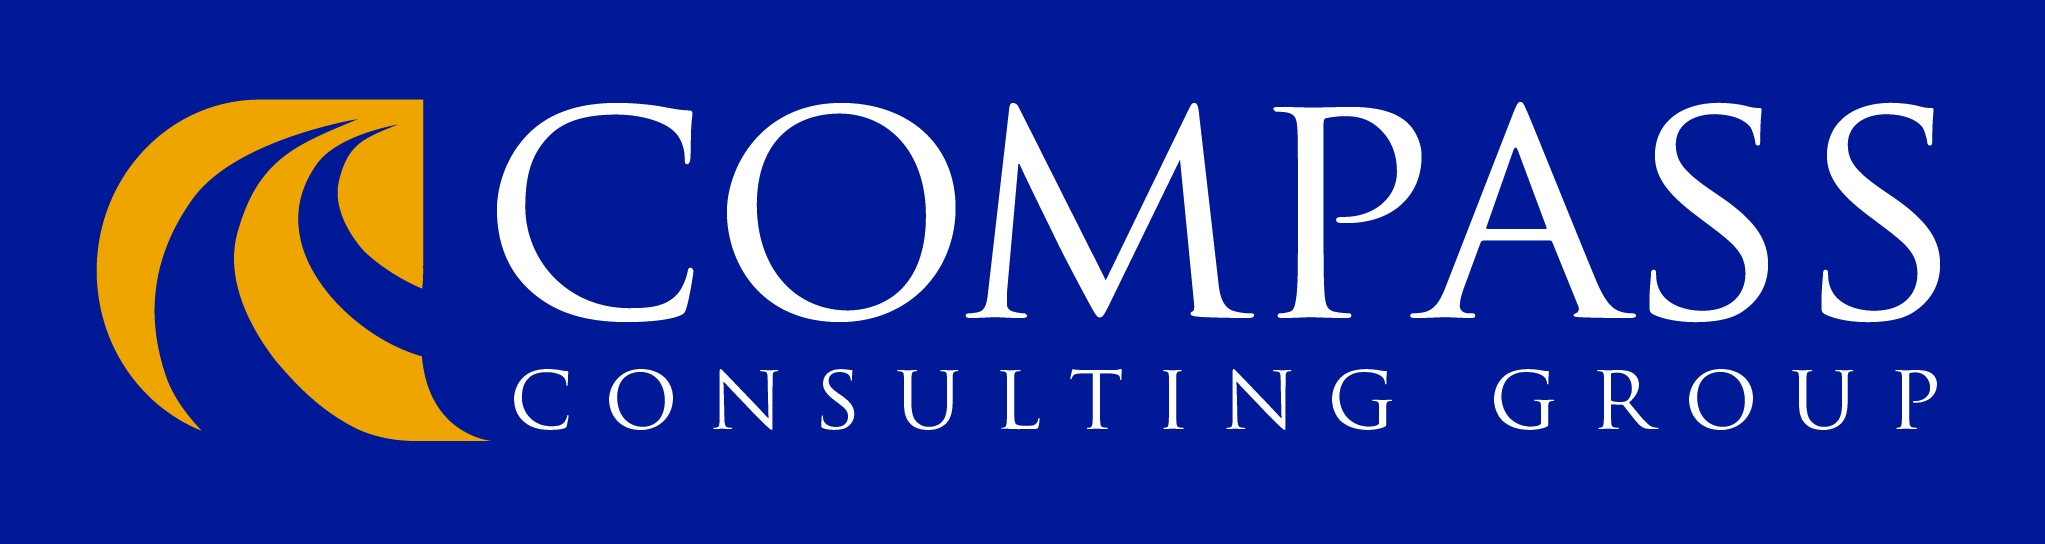 Diamond Compass Consulting Group